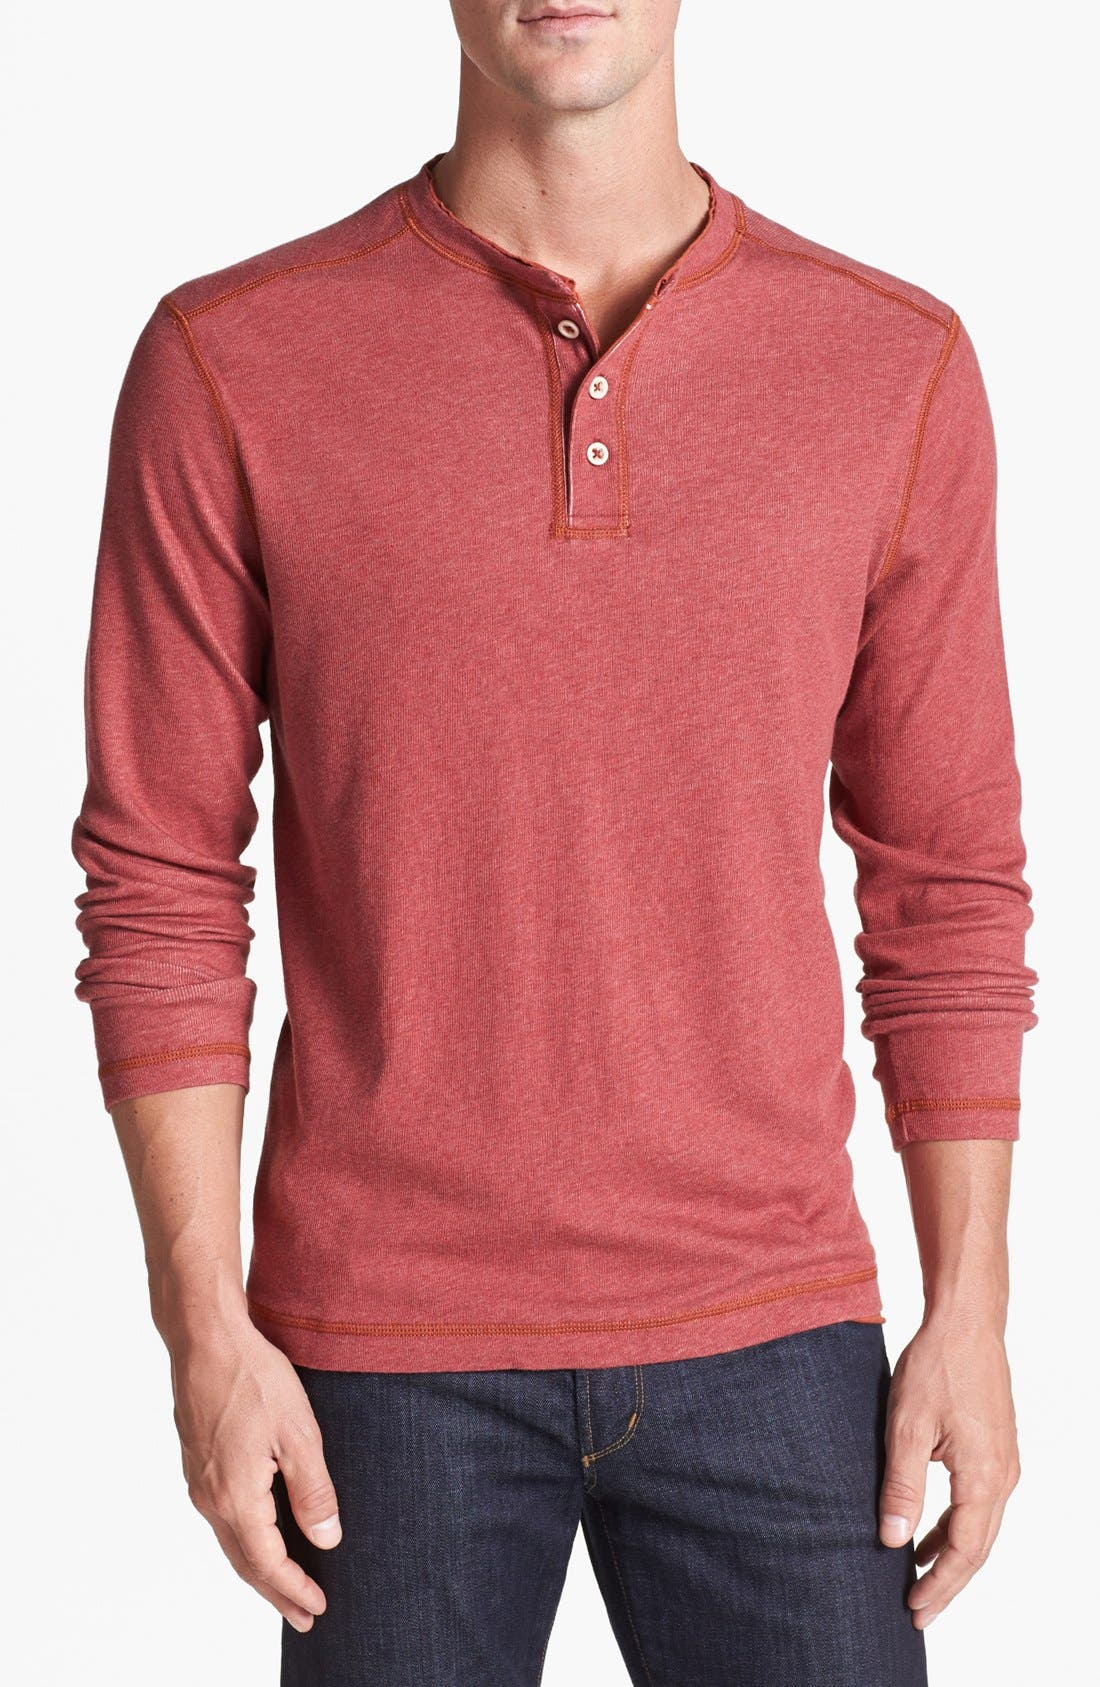 Alternate Image 1 Selected - Tommy Bahama Denim 'Quick Draw' Island Modern Fit Henley